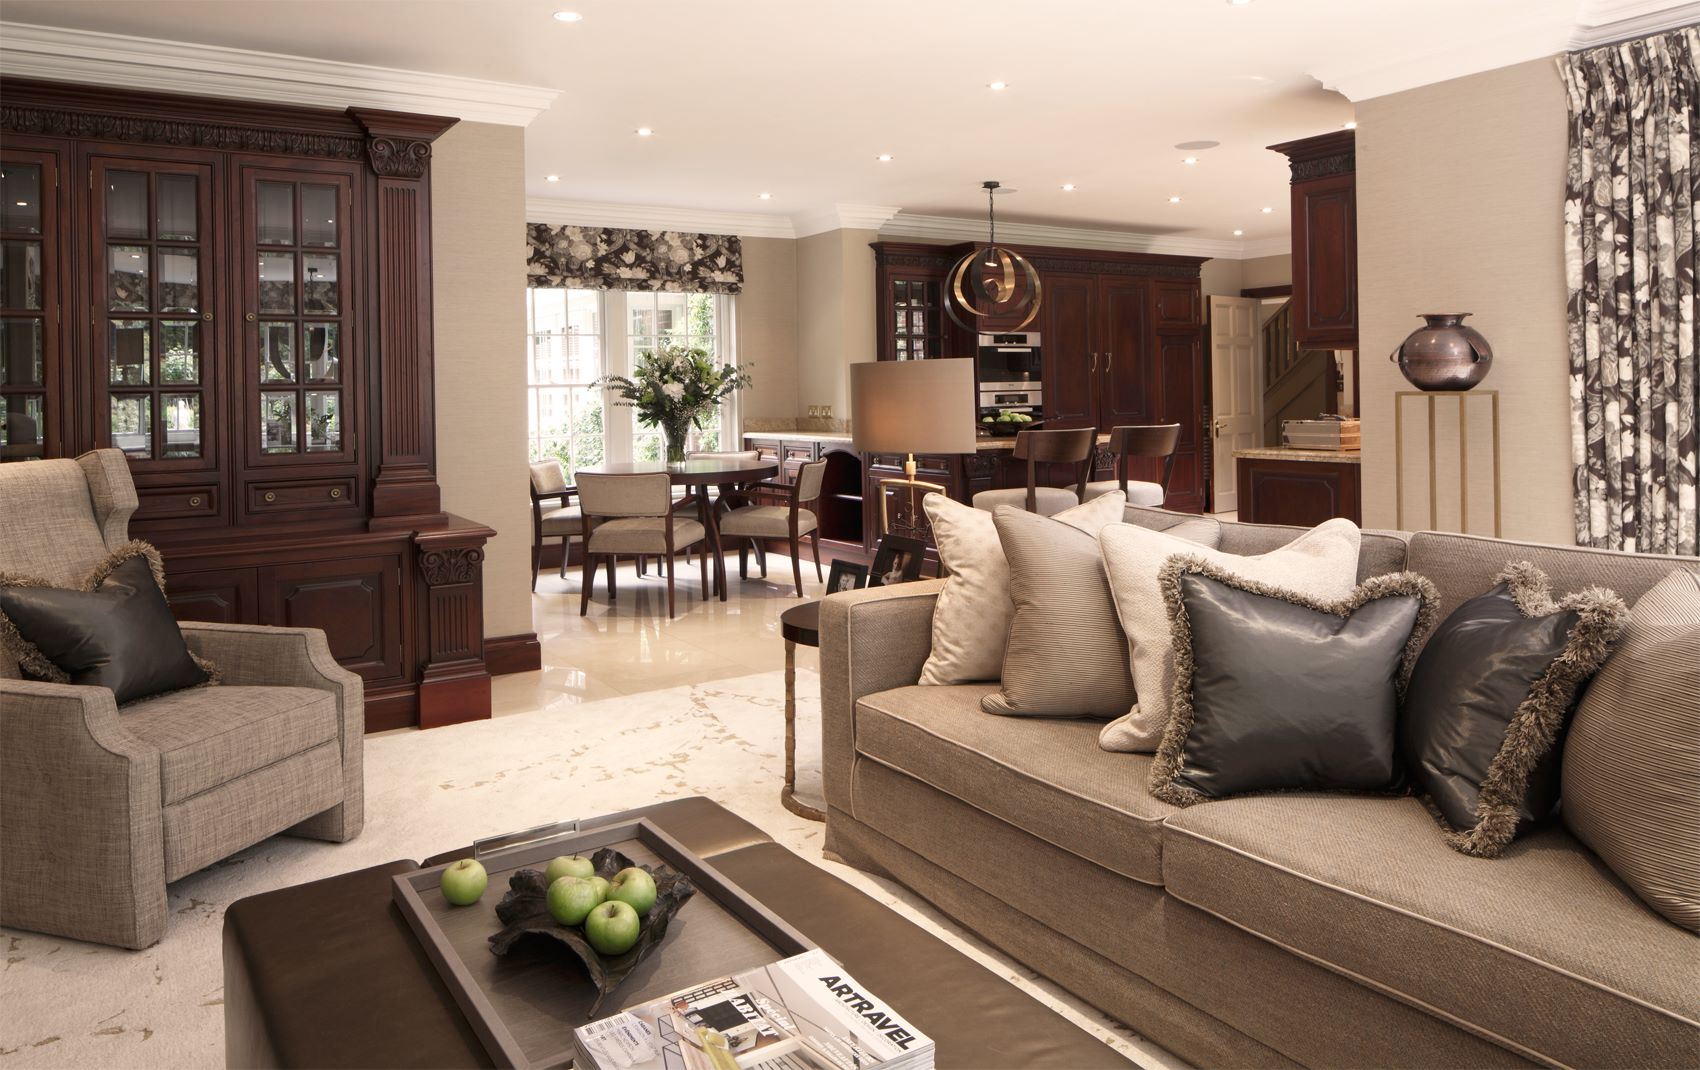 st georges hill - decorative living room